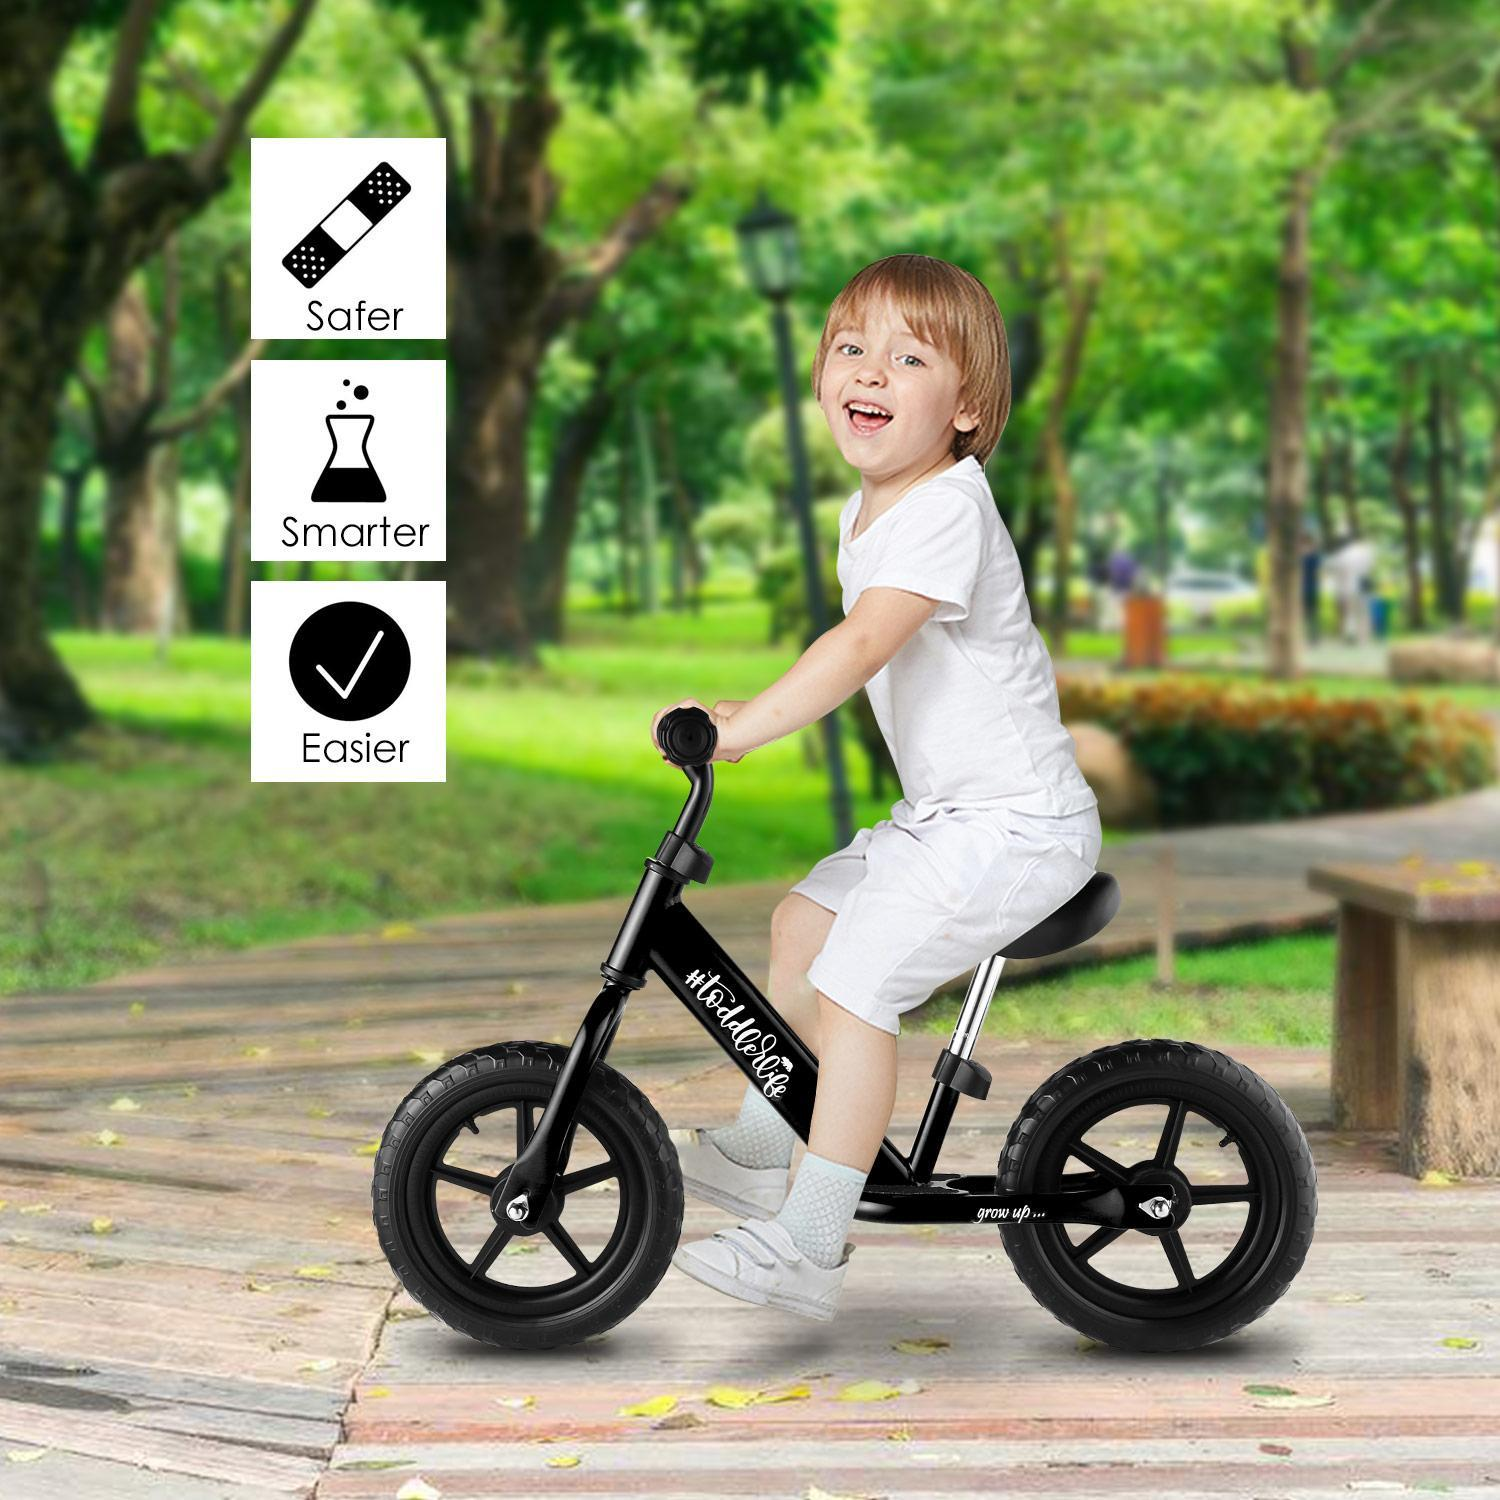 2018 The Newest Baby Balance Bike for Kids Age 3-6 Y/Adjustable Seat and Handle Height-More Suit for Growing Children HFON